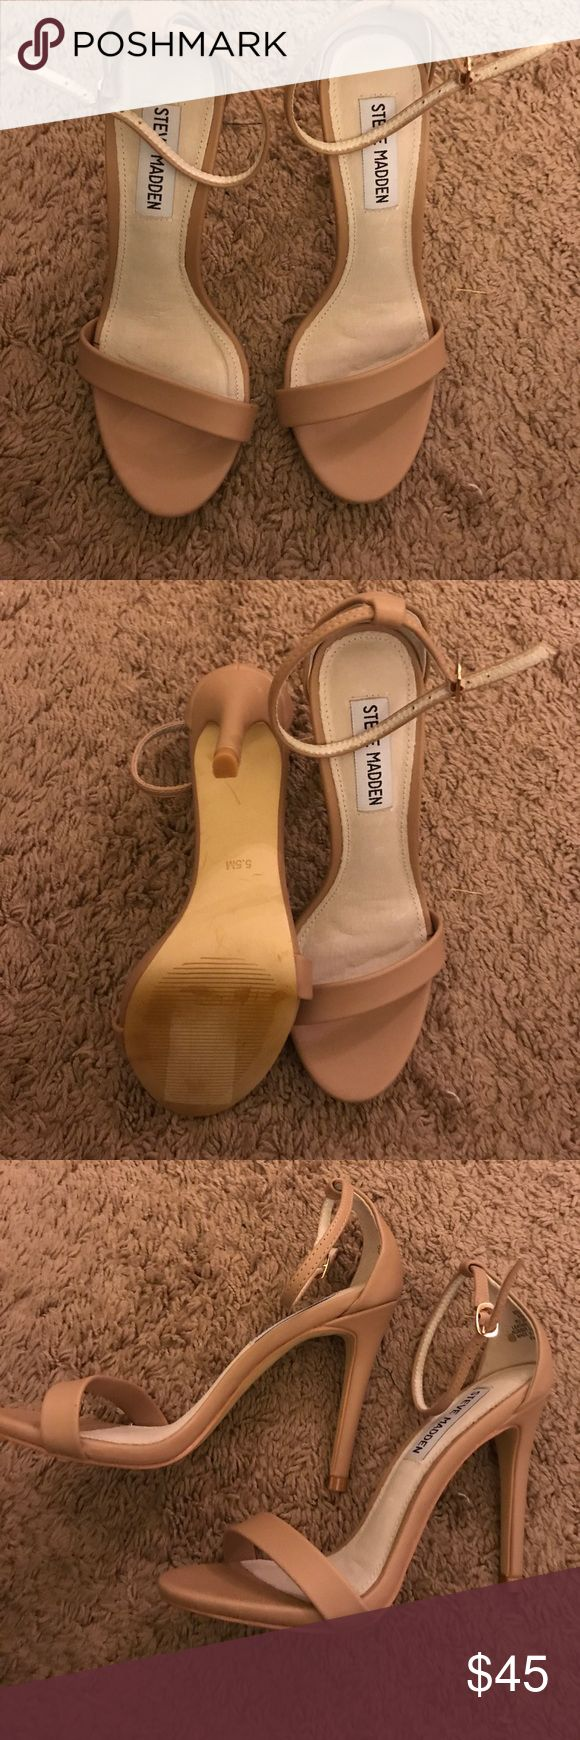 Nude Steve Madden high heels These are beautiful shoes that I bought for a cruise! Barely worn. Never worn outside! Steve Madden Shoes Heels